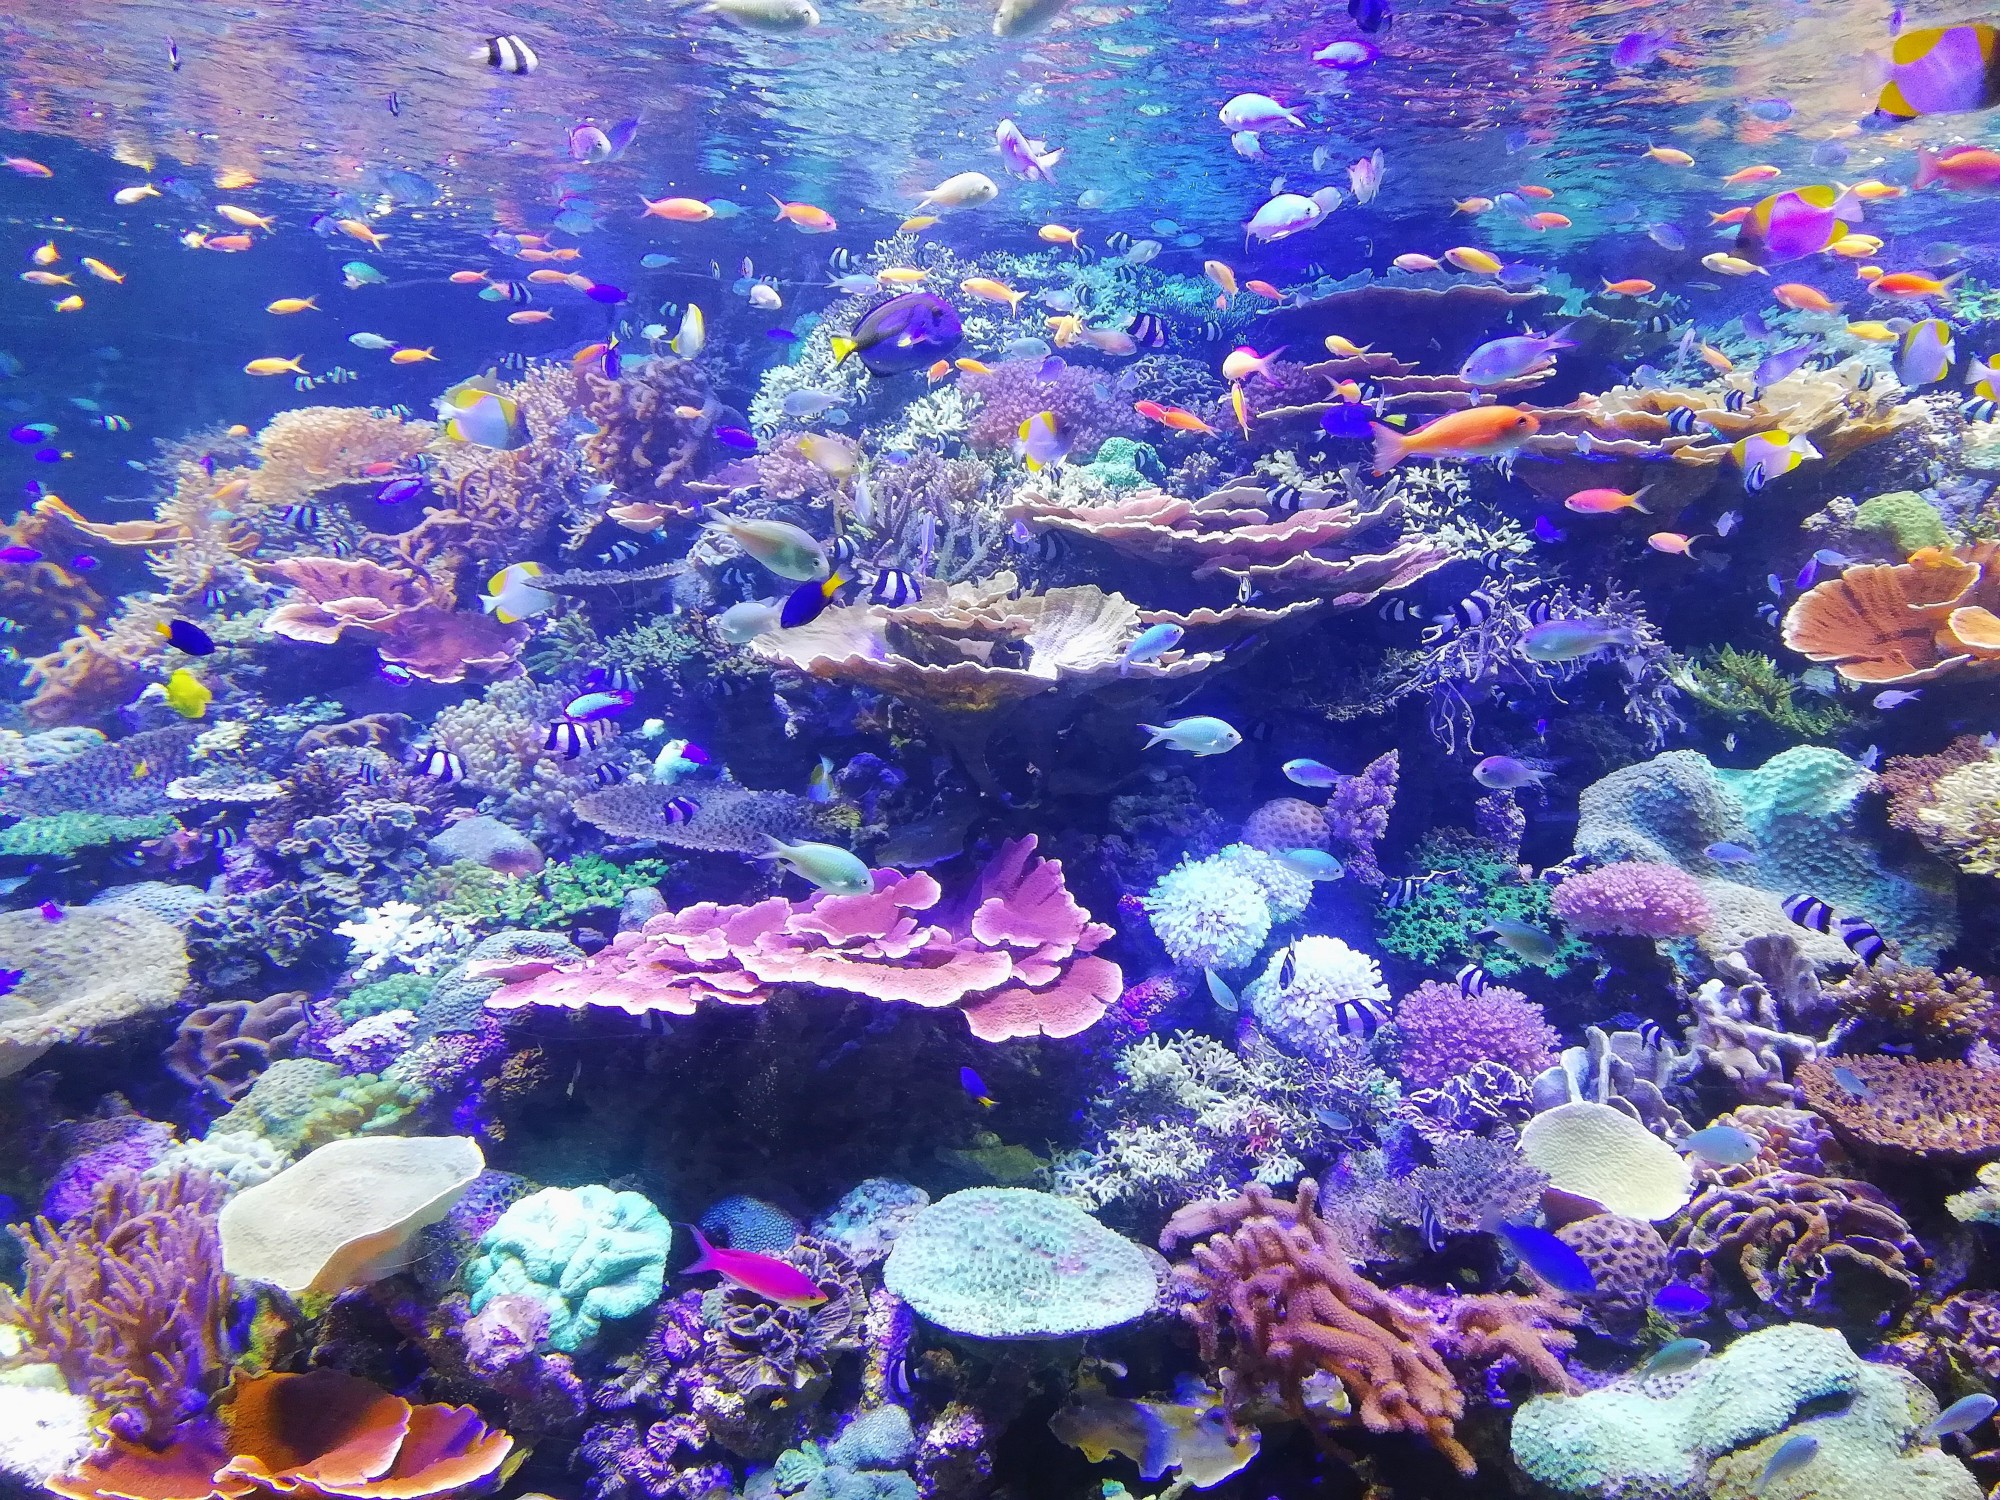 colorful photograph of a coral reef teeming with fish and multicolored aquatic plants and coral